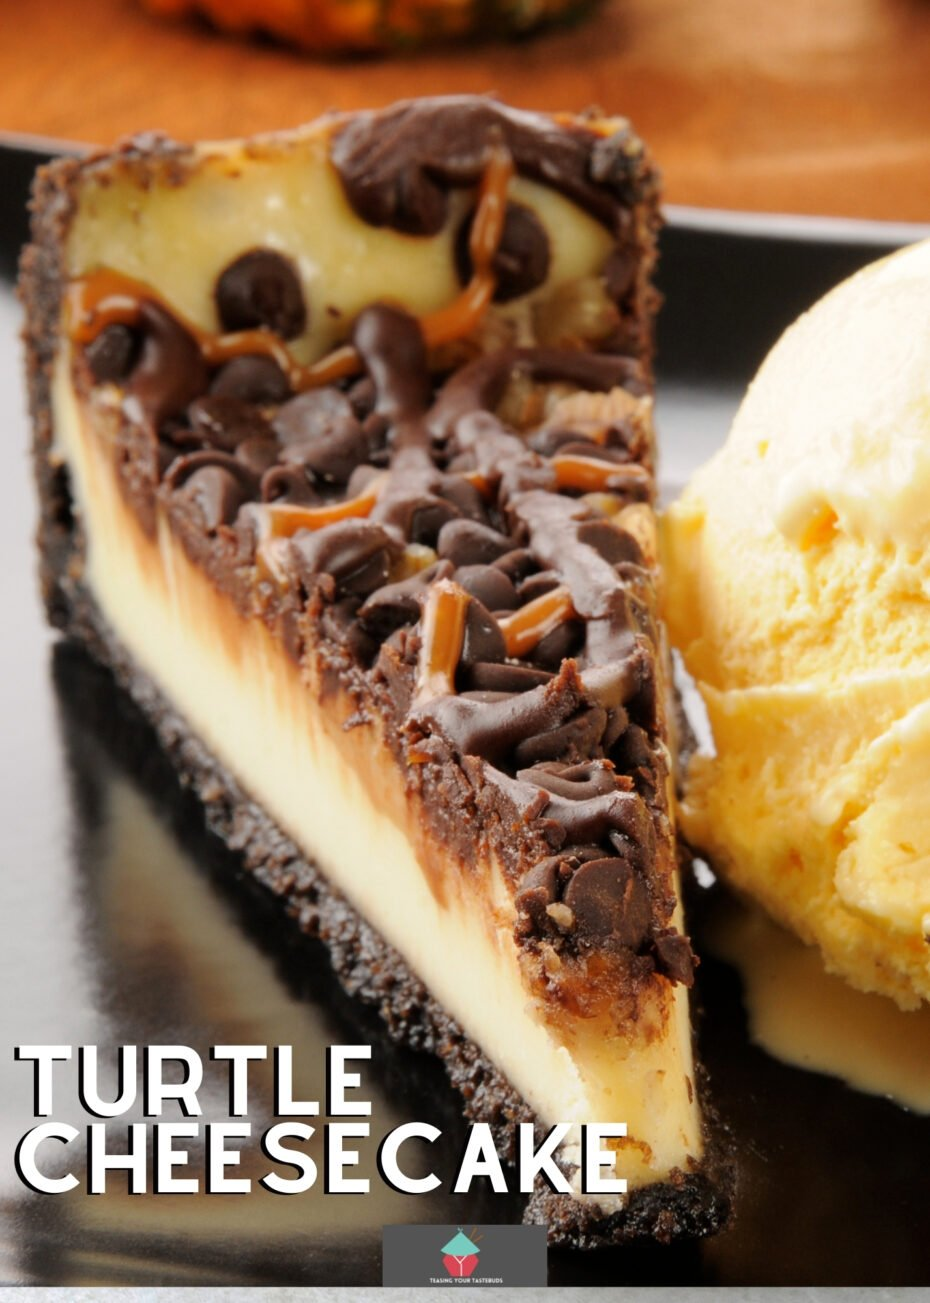 Turtle Cheesecake is a delicious creamy baked cheesecake topped with pecans, caramel, and chocolate. A perfect combination of deliciousness in every bite. Great for parties and celebrations.